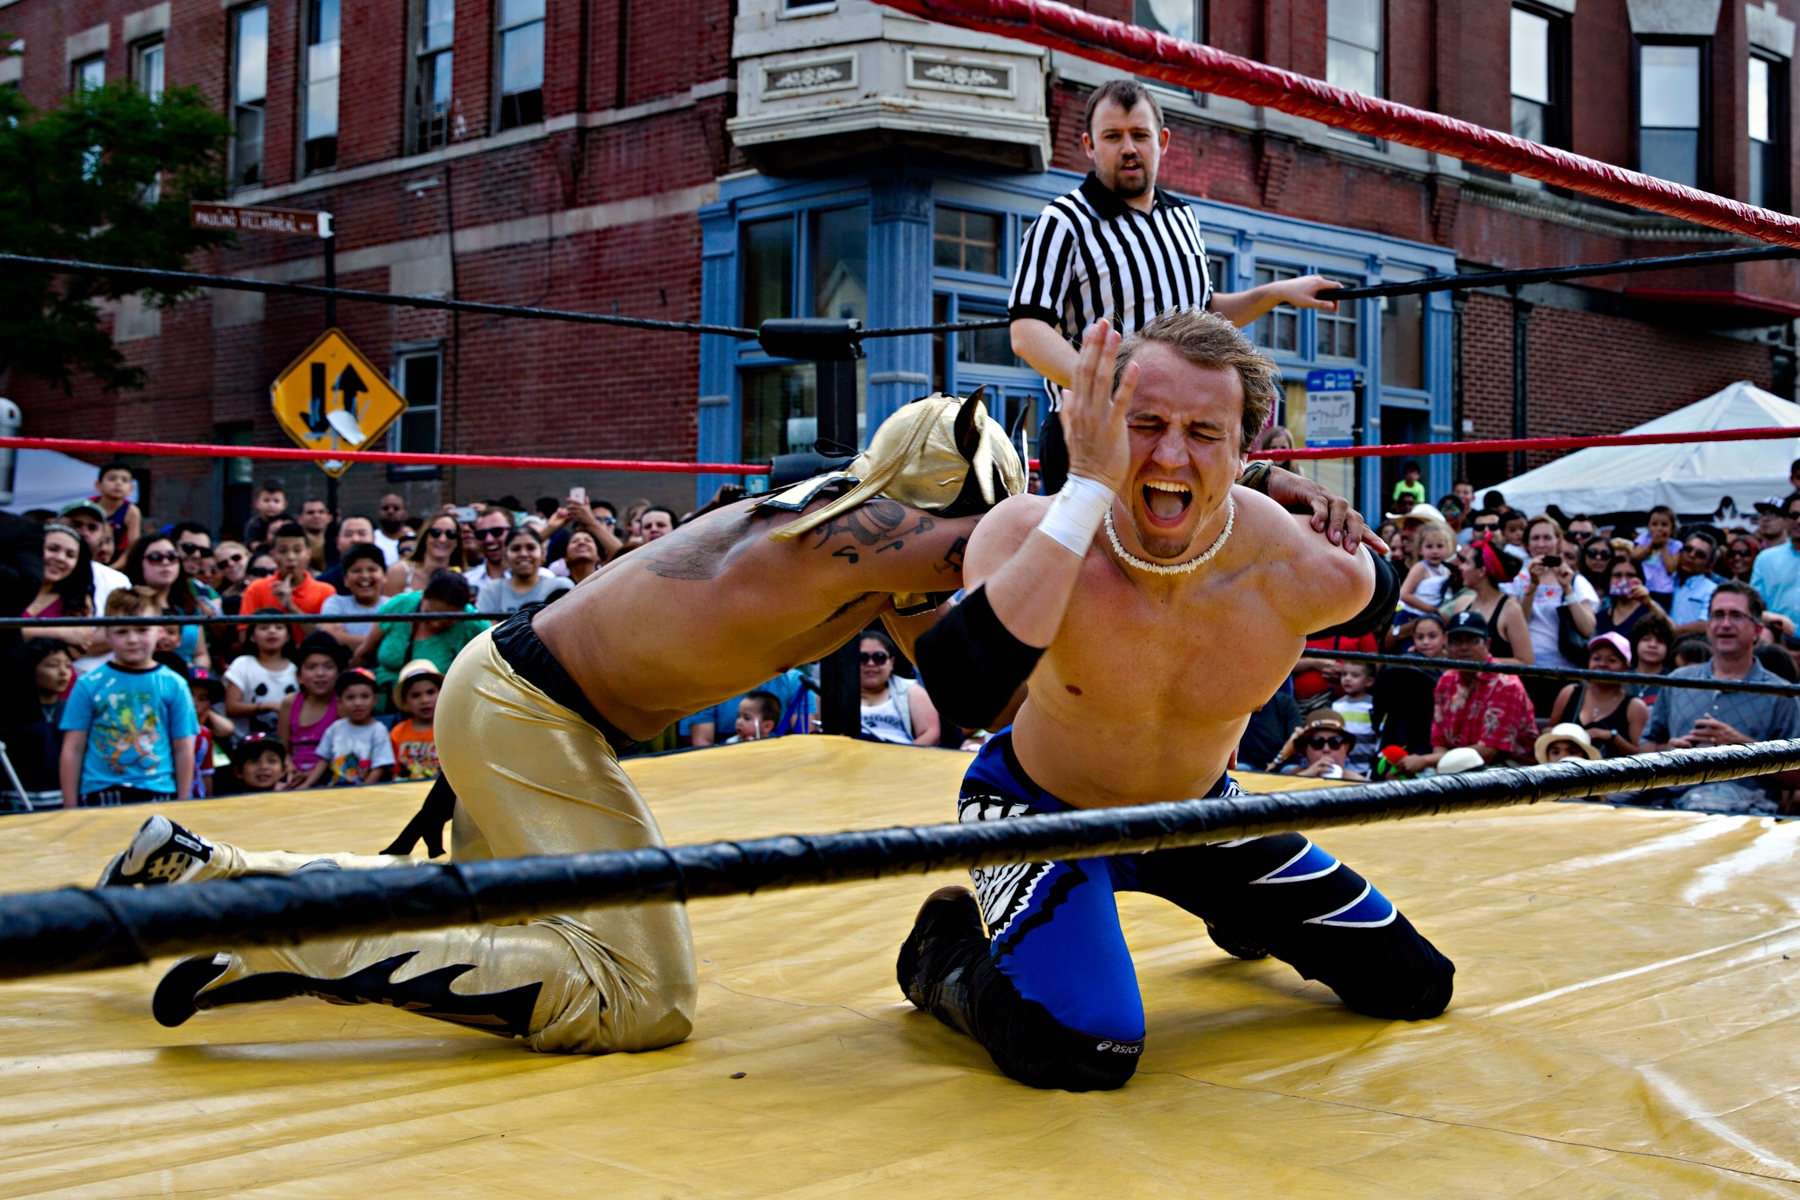 Art and Documentary Photography - Loading LuchaLibre-591-Edit.jpg